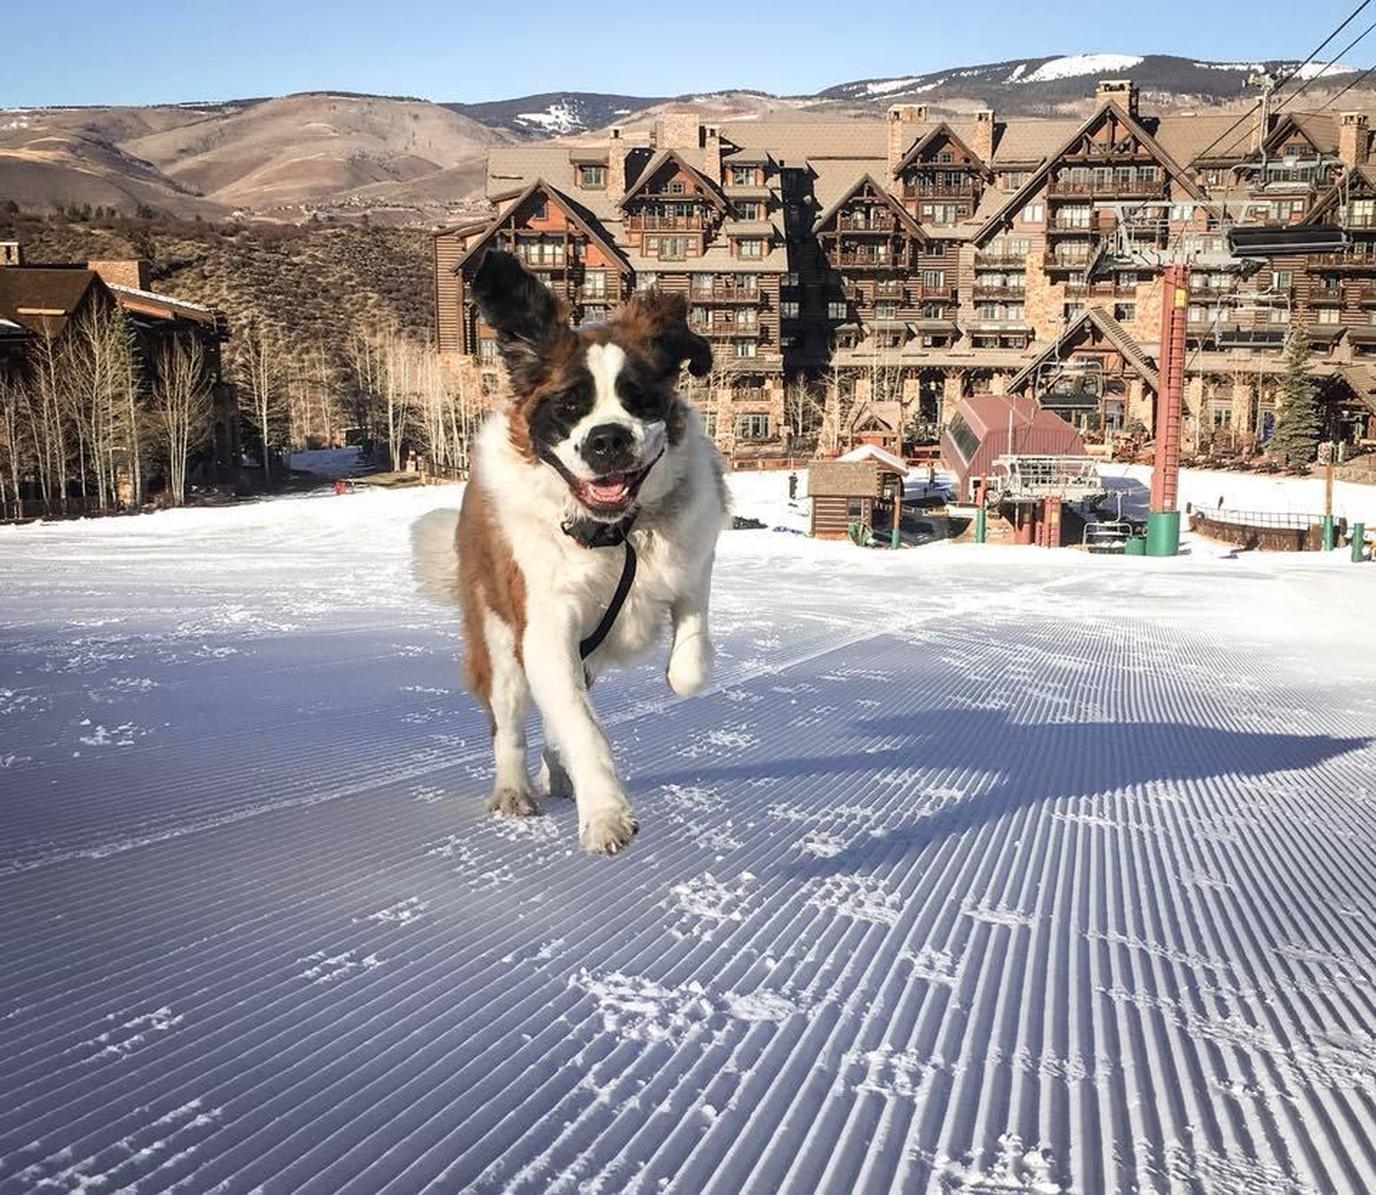 The Ritz Carlton, Bachelor Gulch is a pet-friendly resort with a human-friendly mascot!